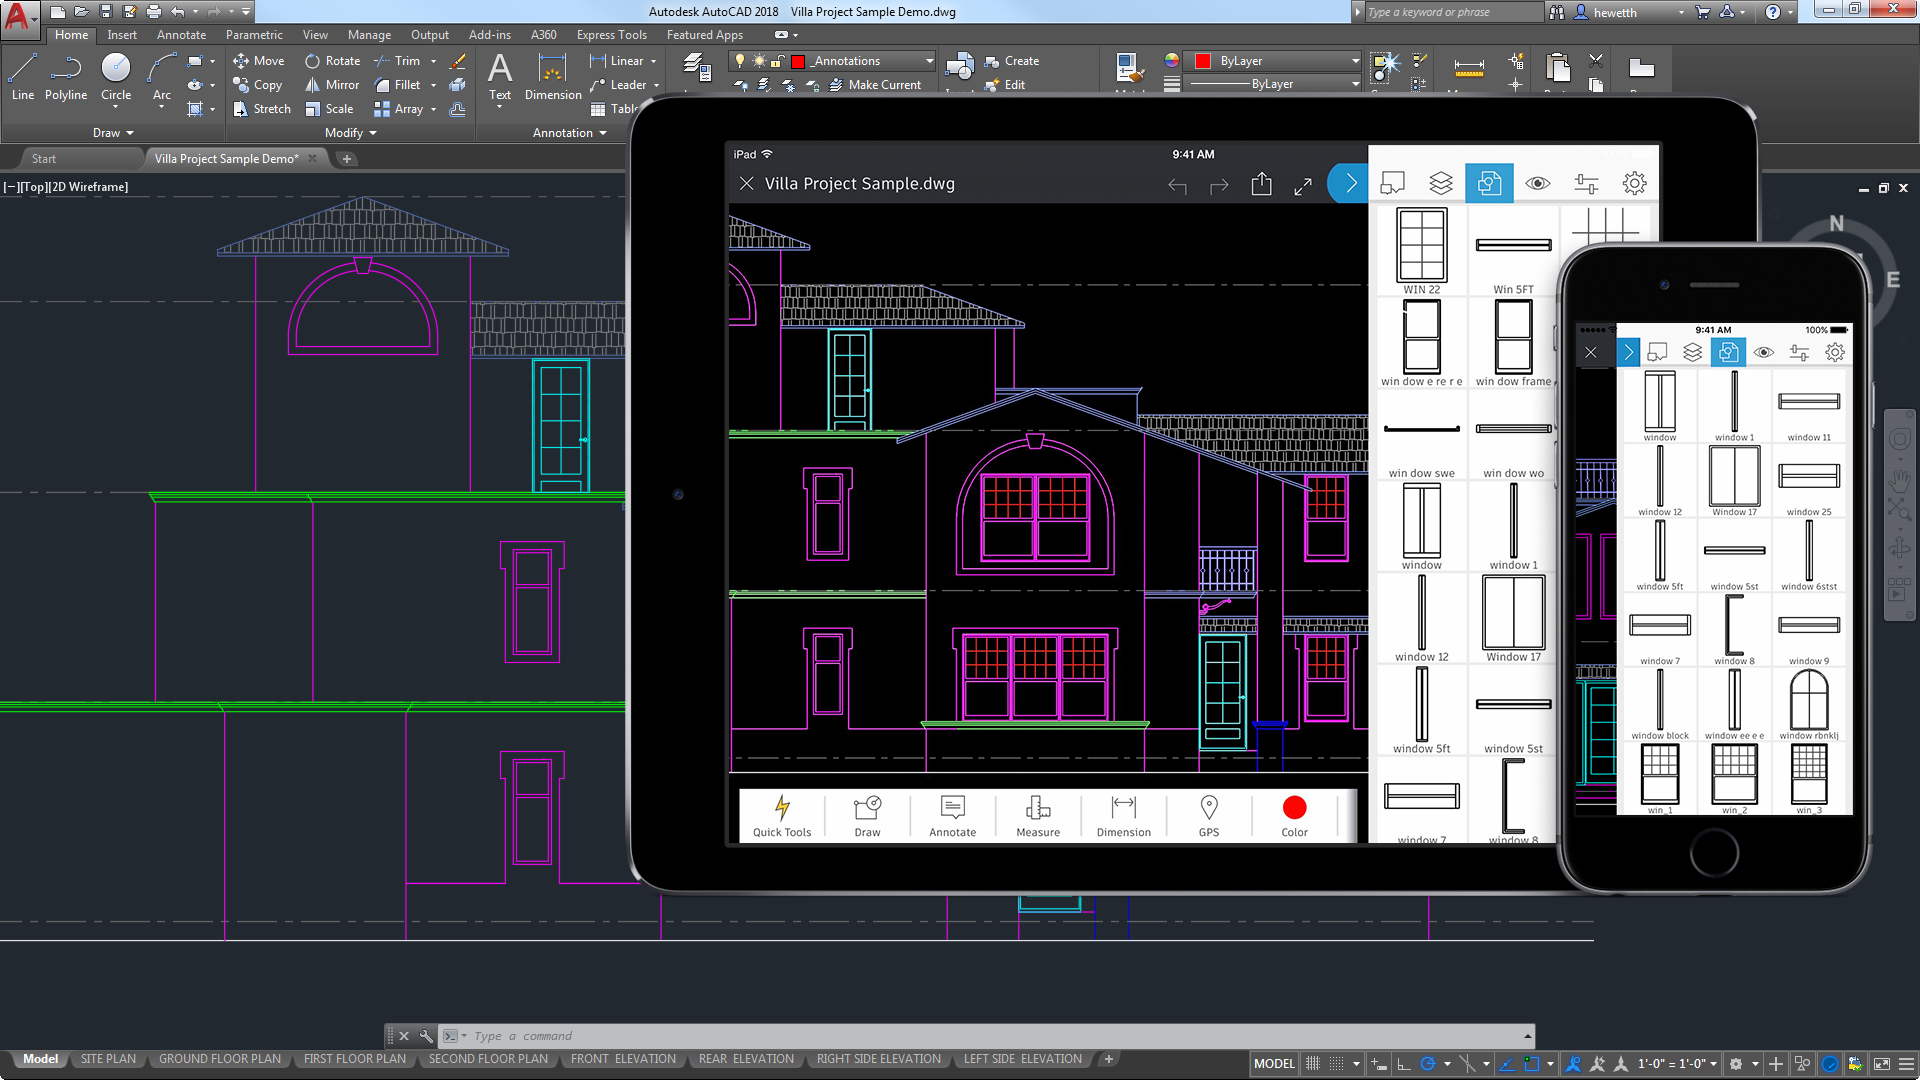 autocad 2010 free download full version with crack 32 bit for xp